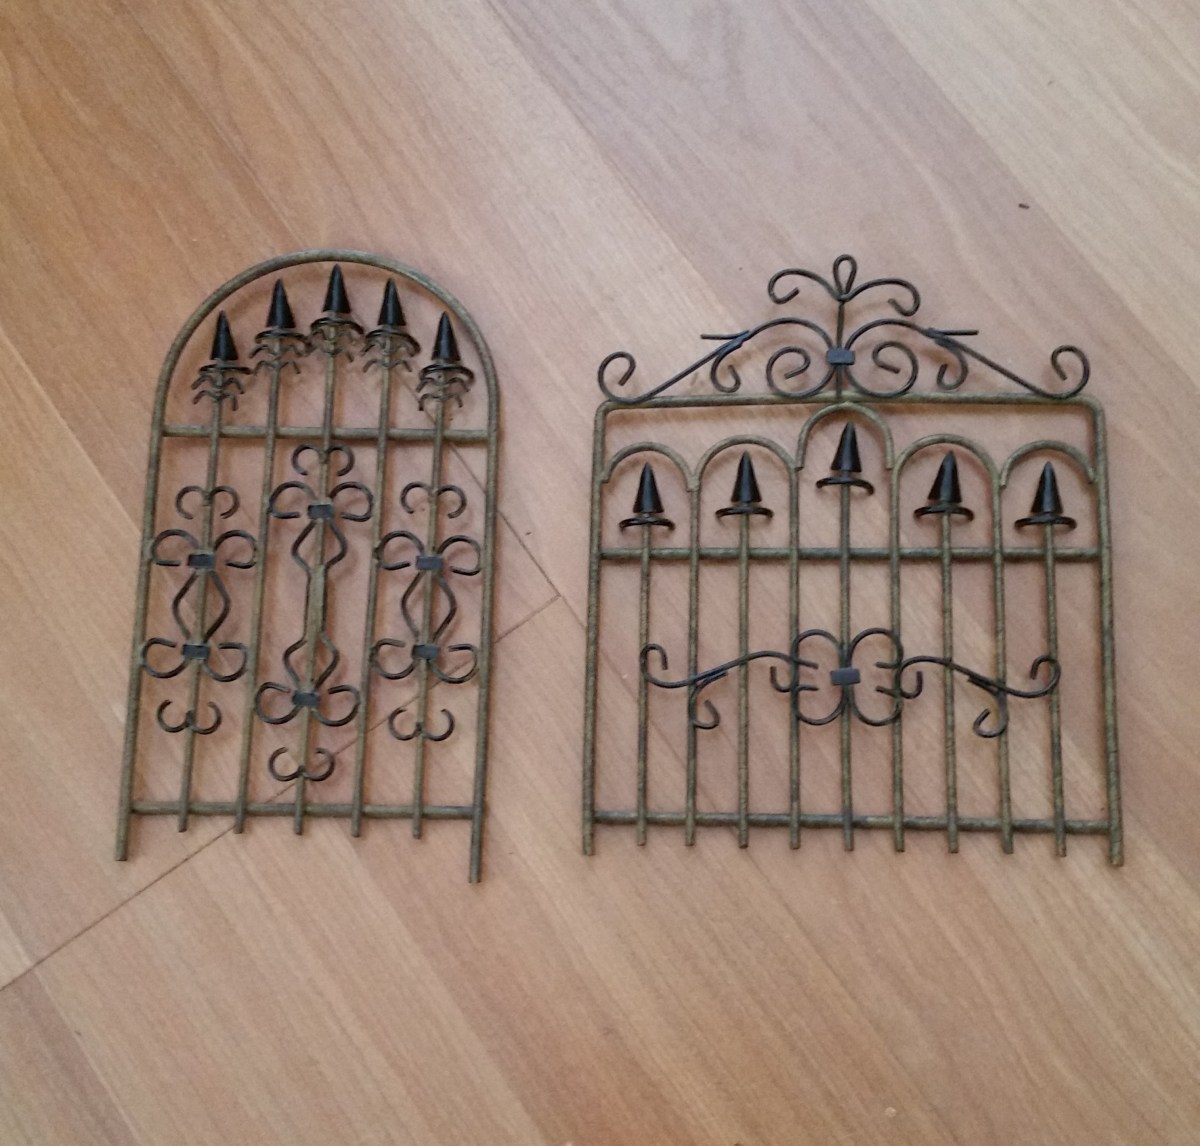 I found these two metal gates at a yard sale for $1 each. What a great find. Check the next photo to see how one looks in use.